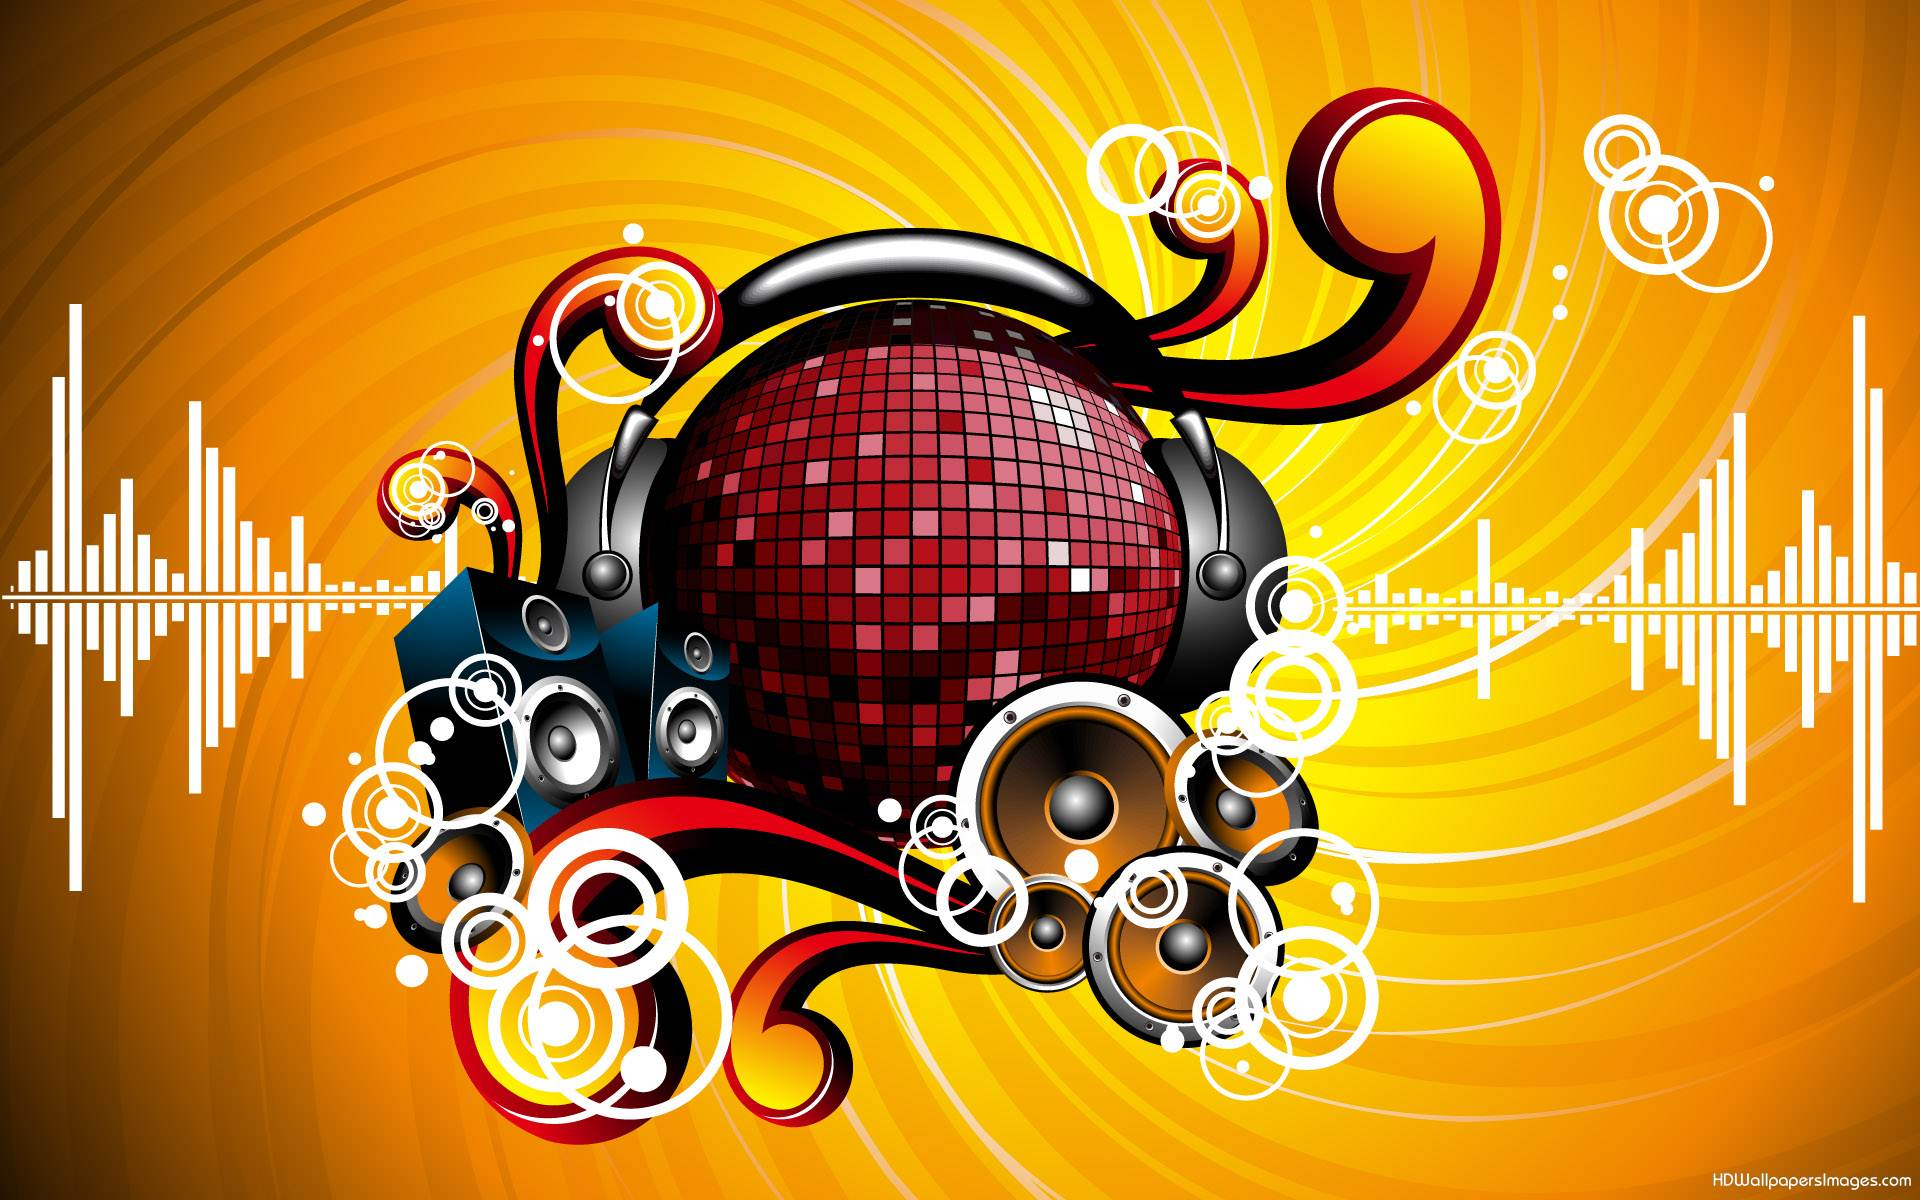 Download Music Artist Wallpapers Gallery